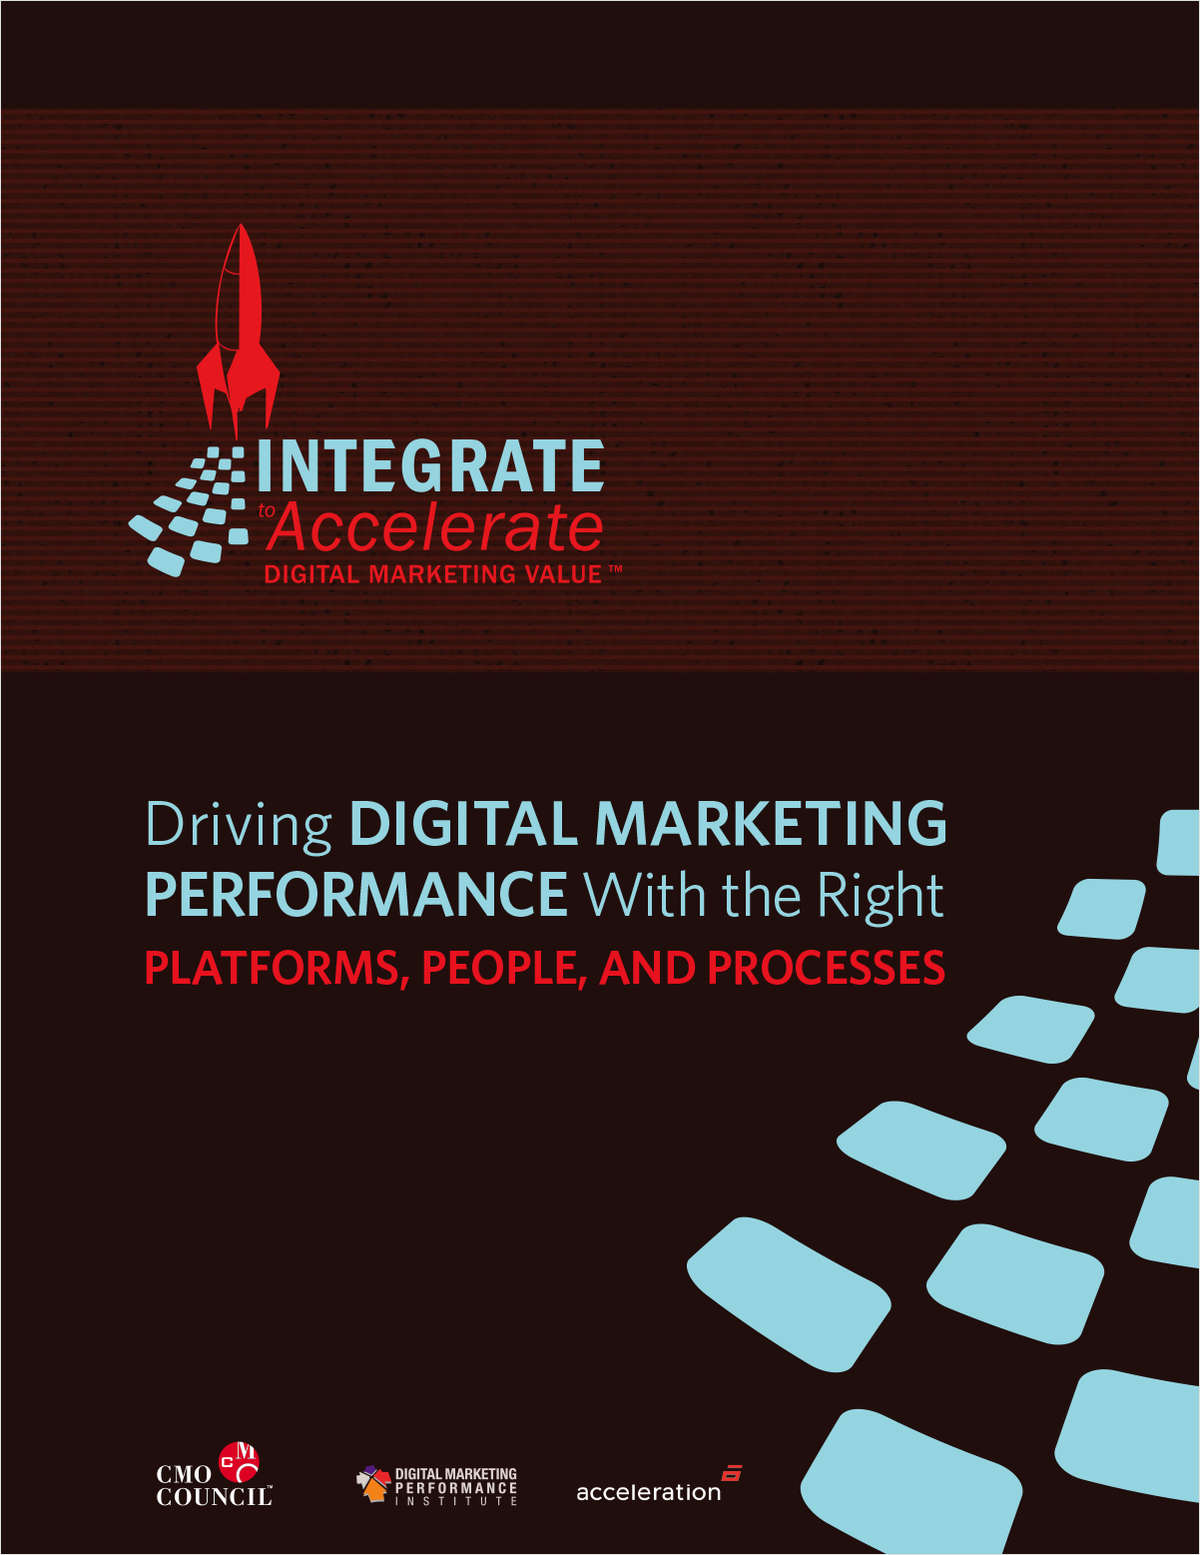 Driving eMarketing Performance With the Right Platforms, People, and Processes